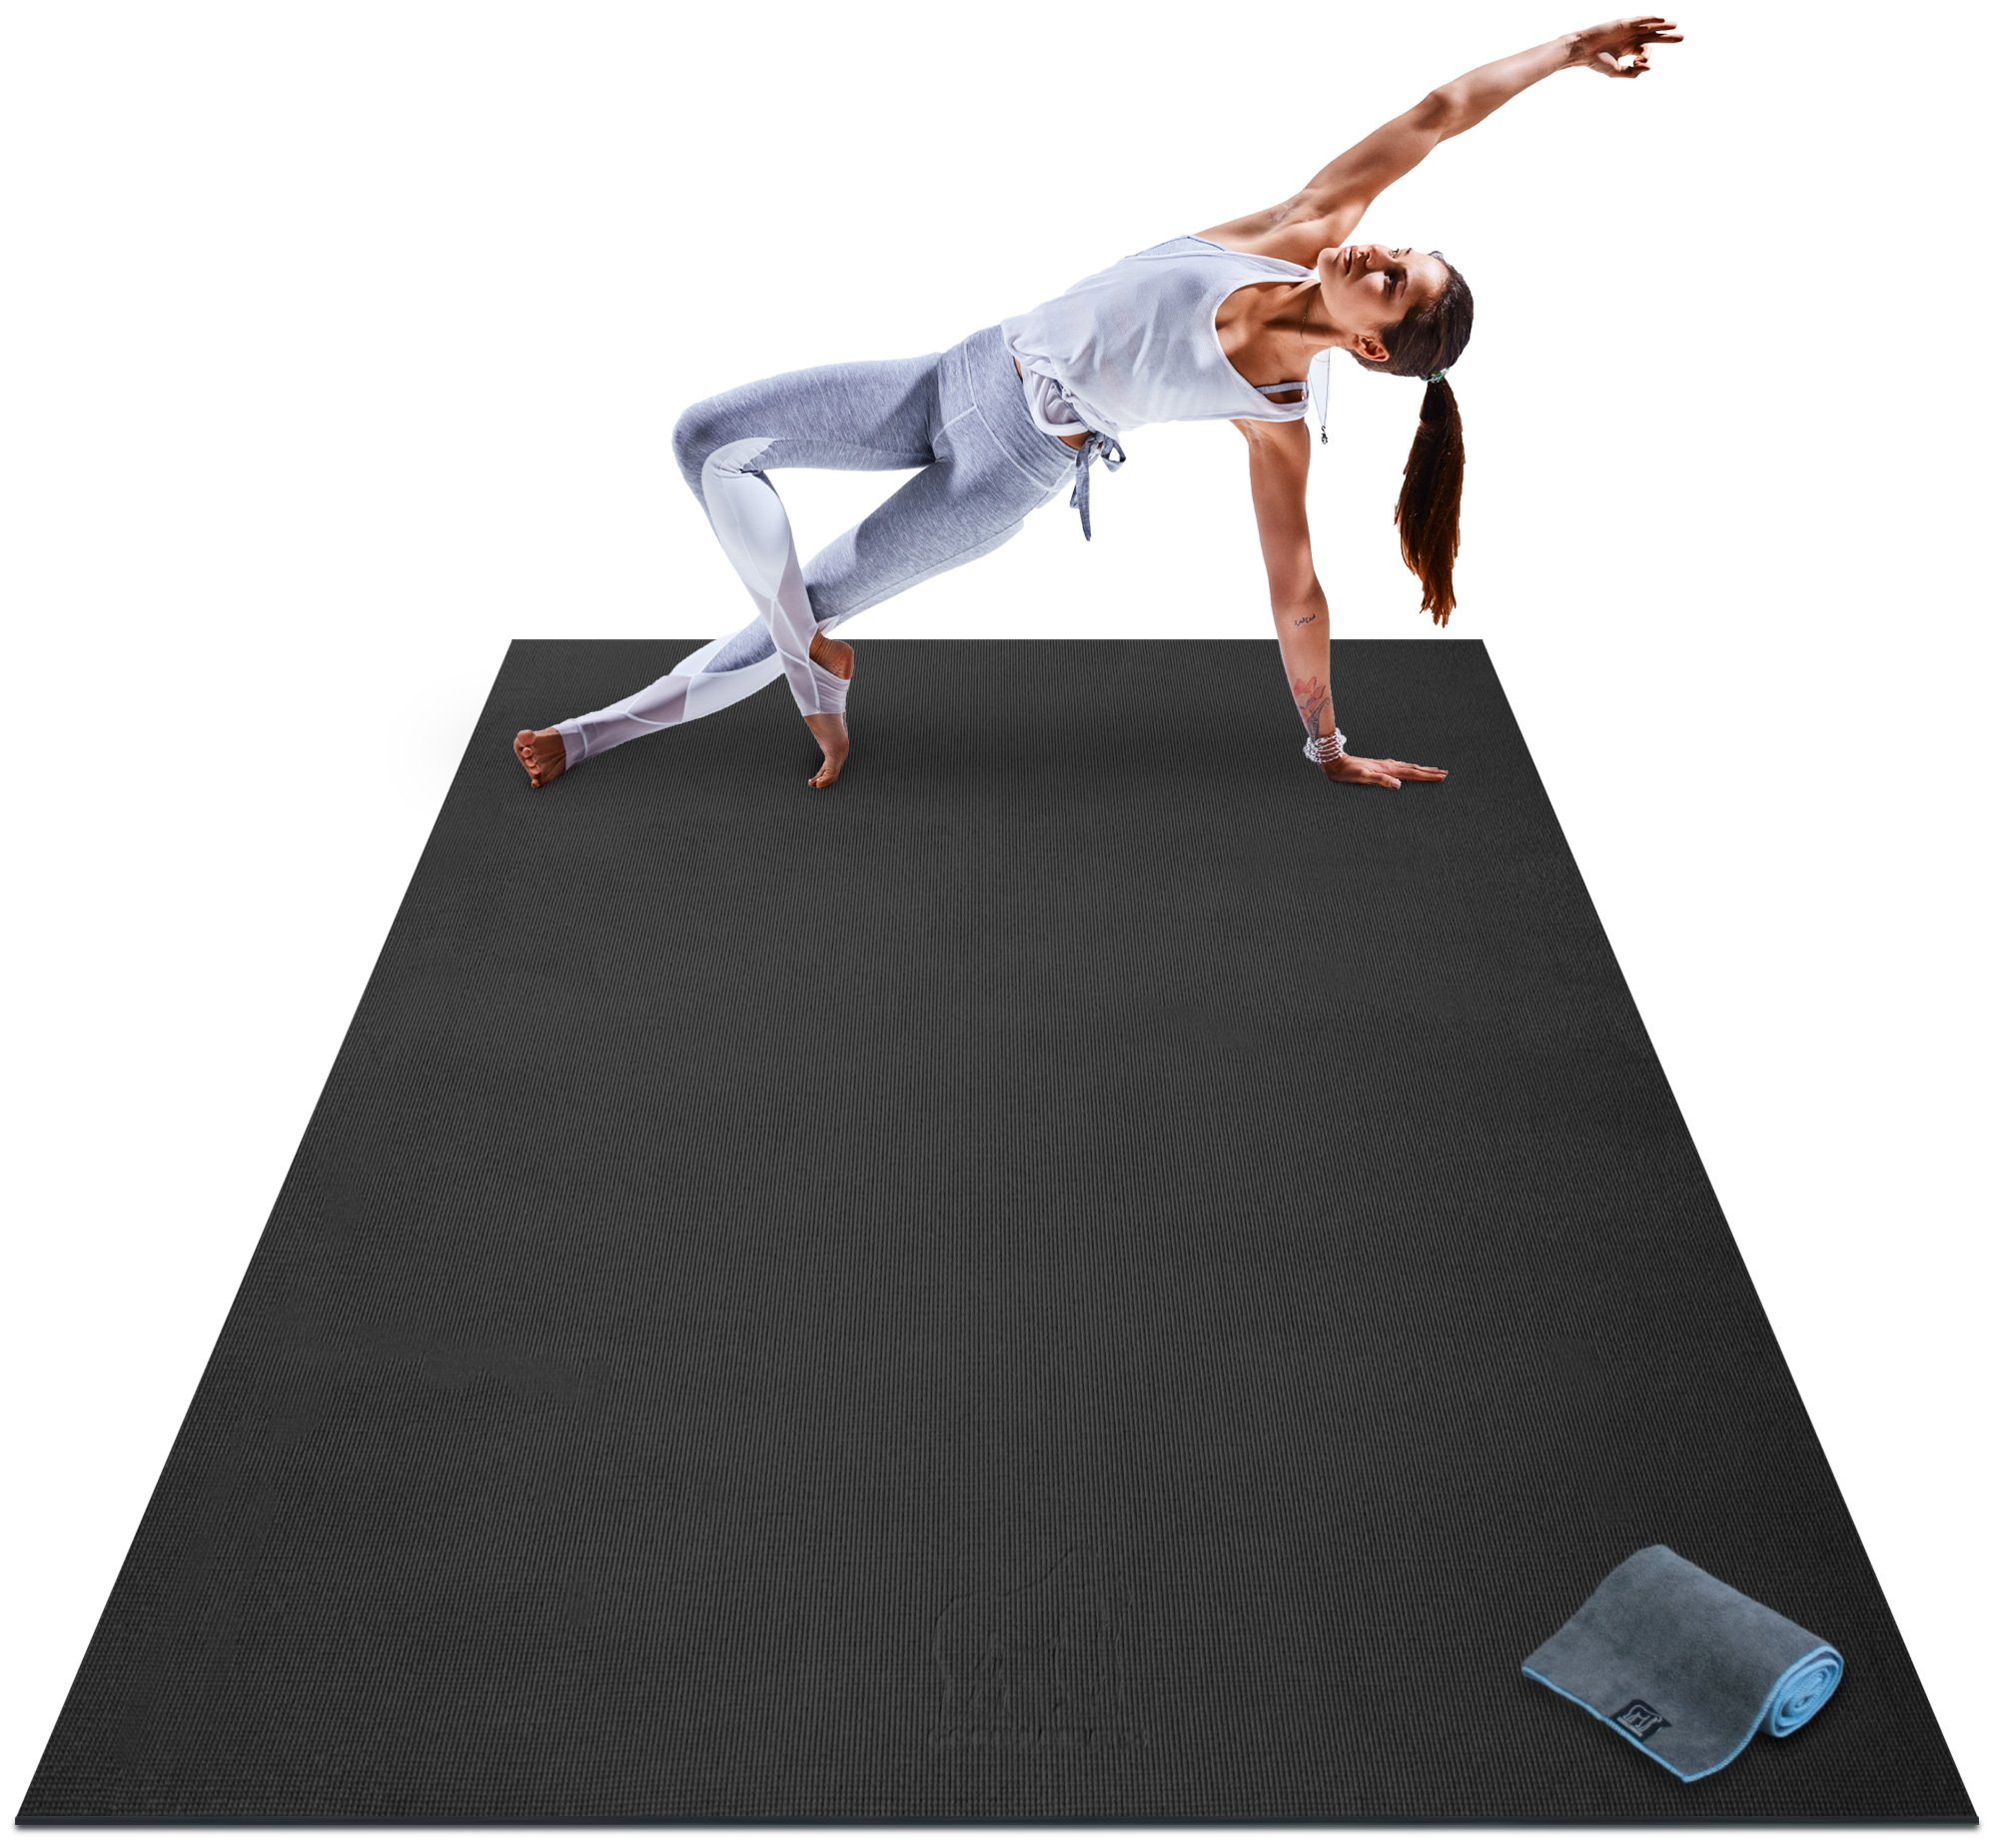 Insanity Workout Apartment Mat